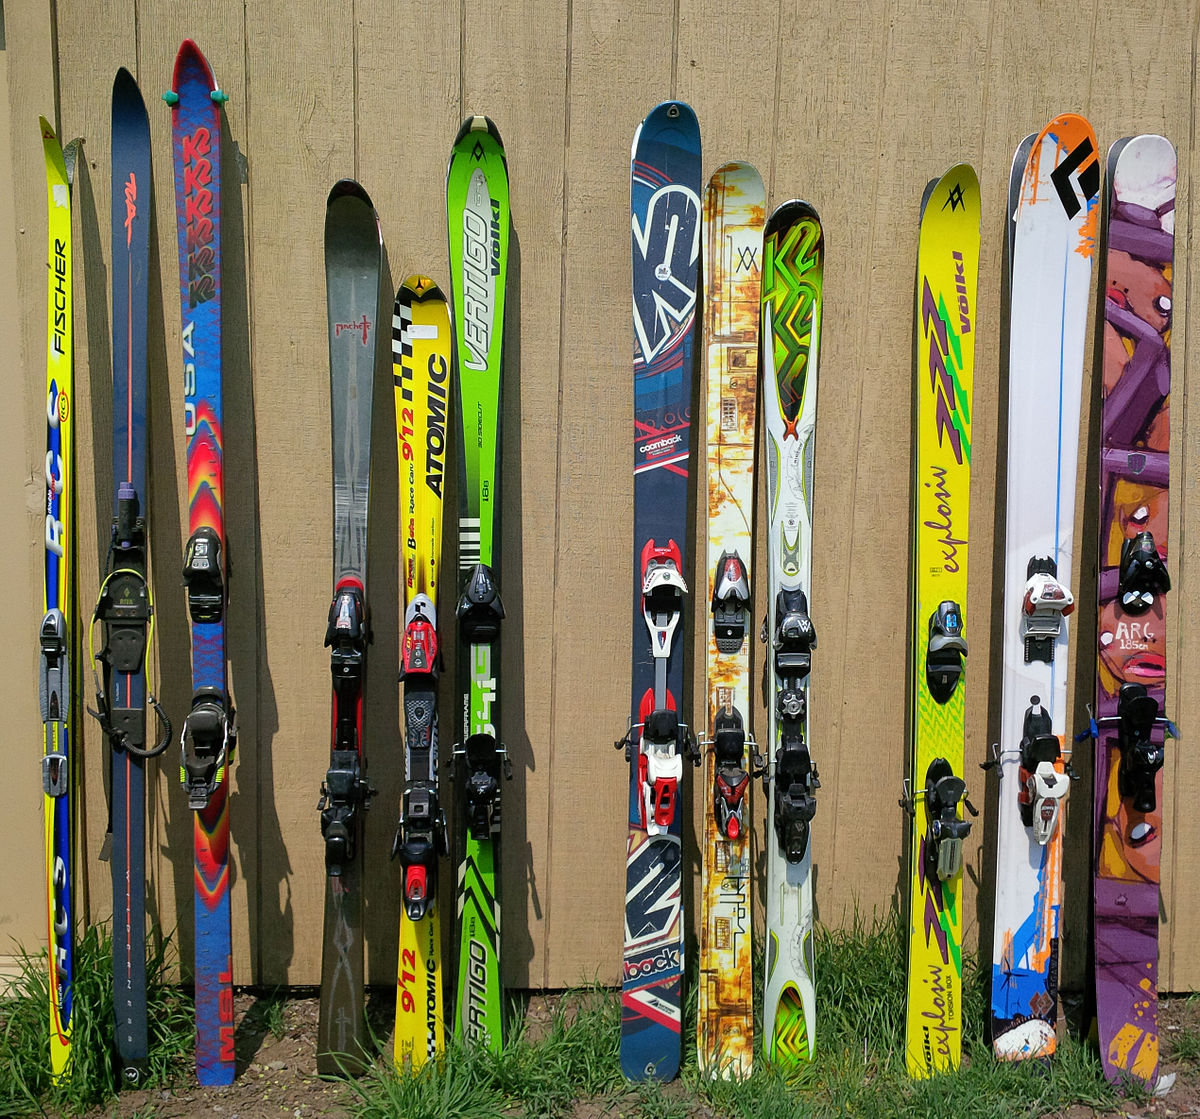 Best cross country skis 2019